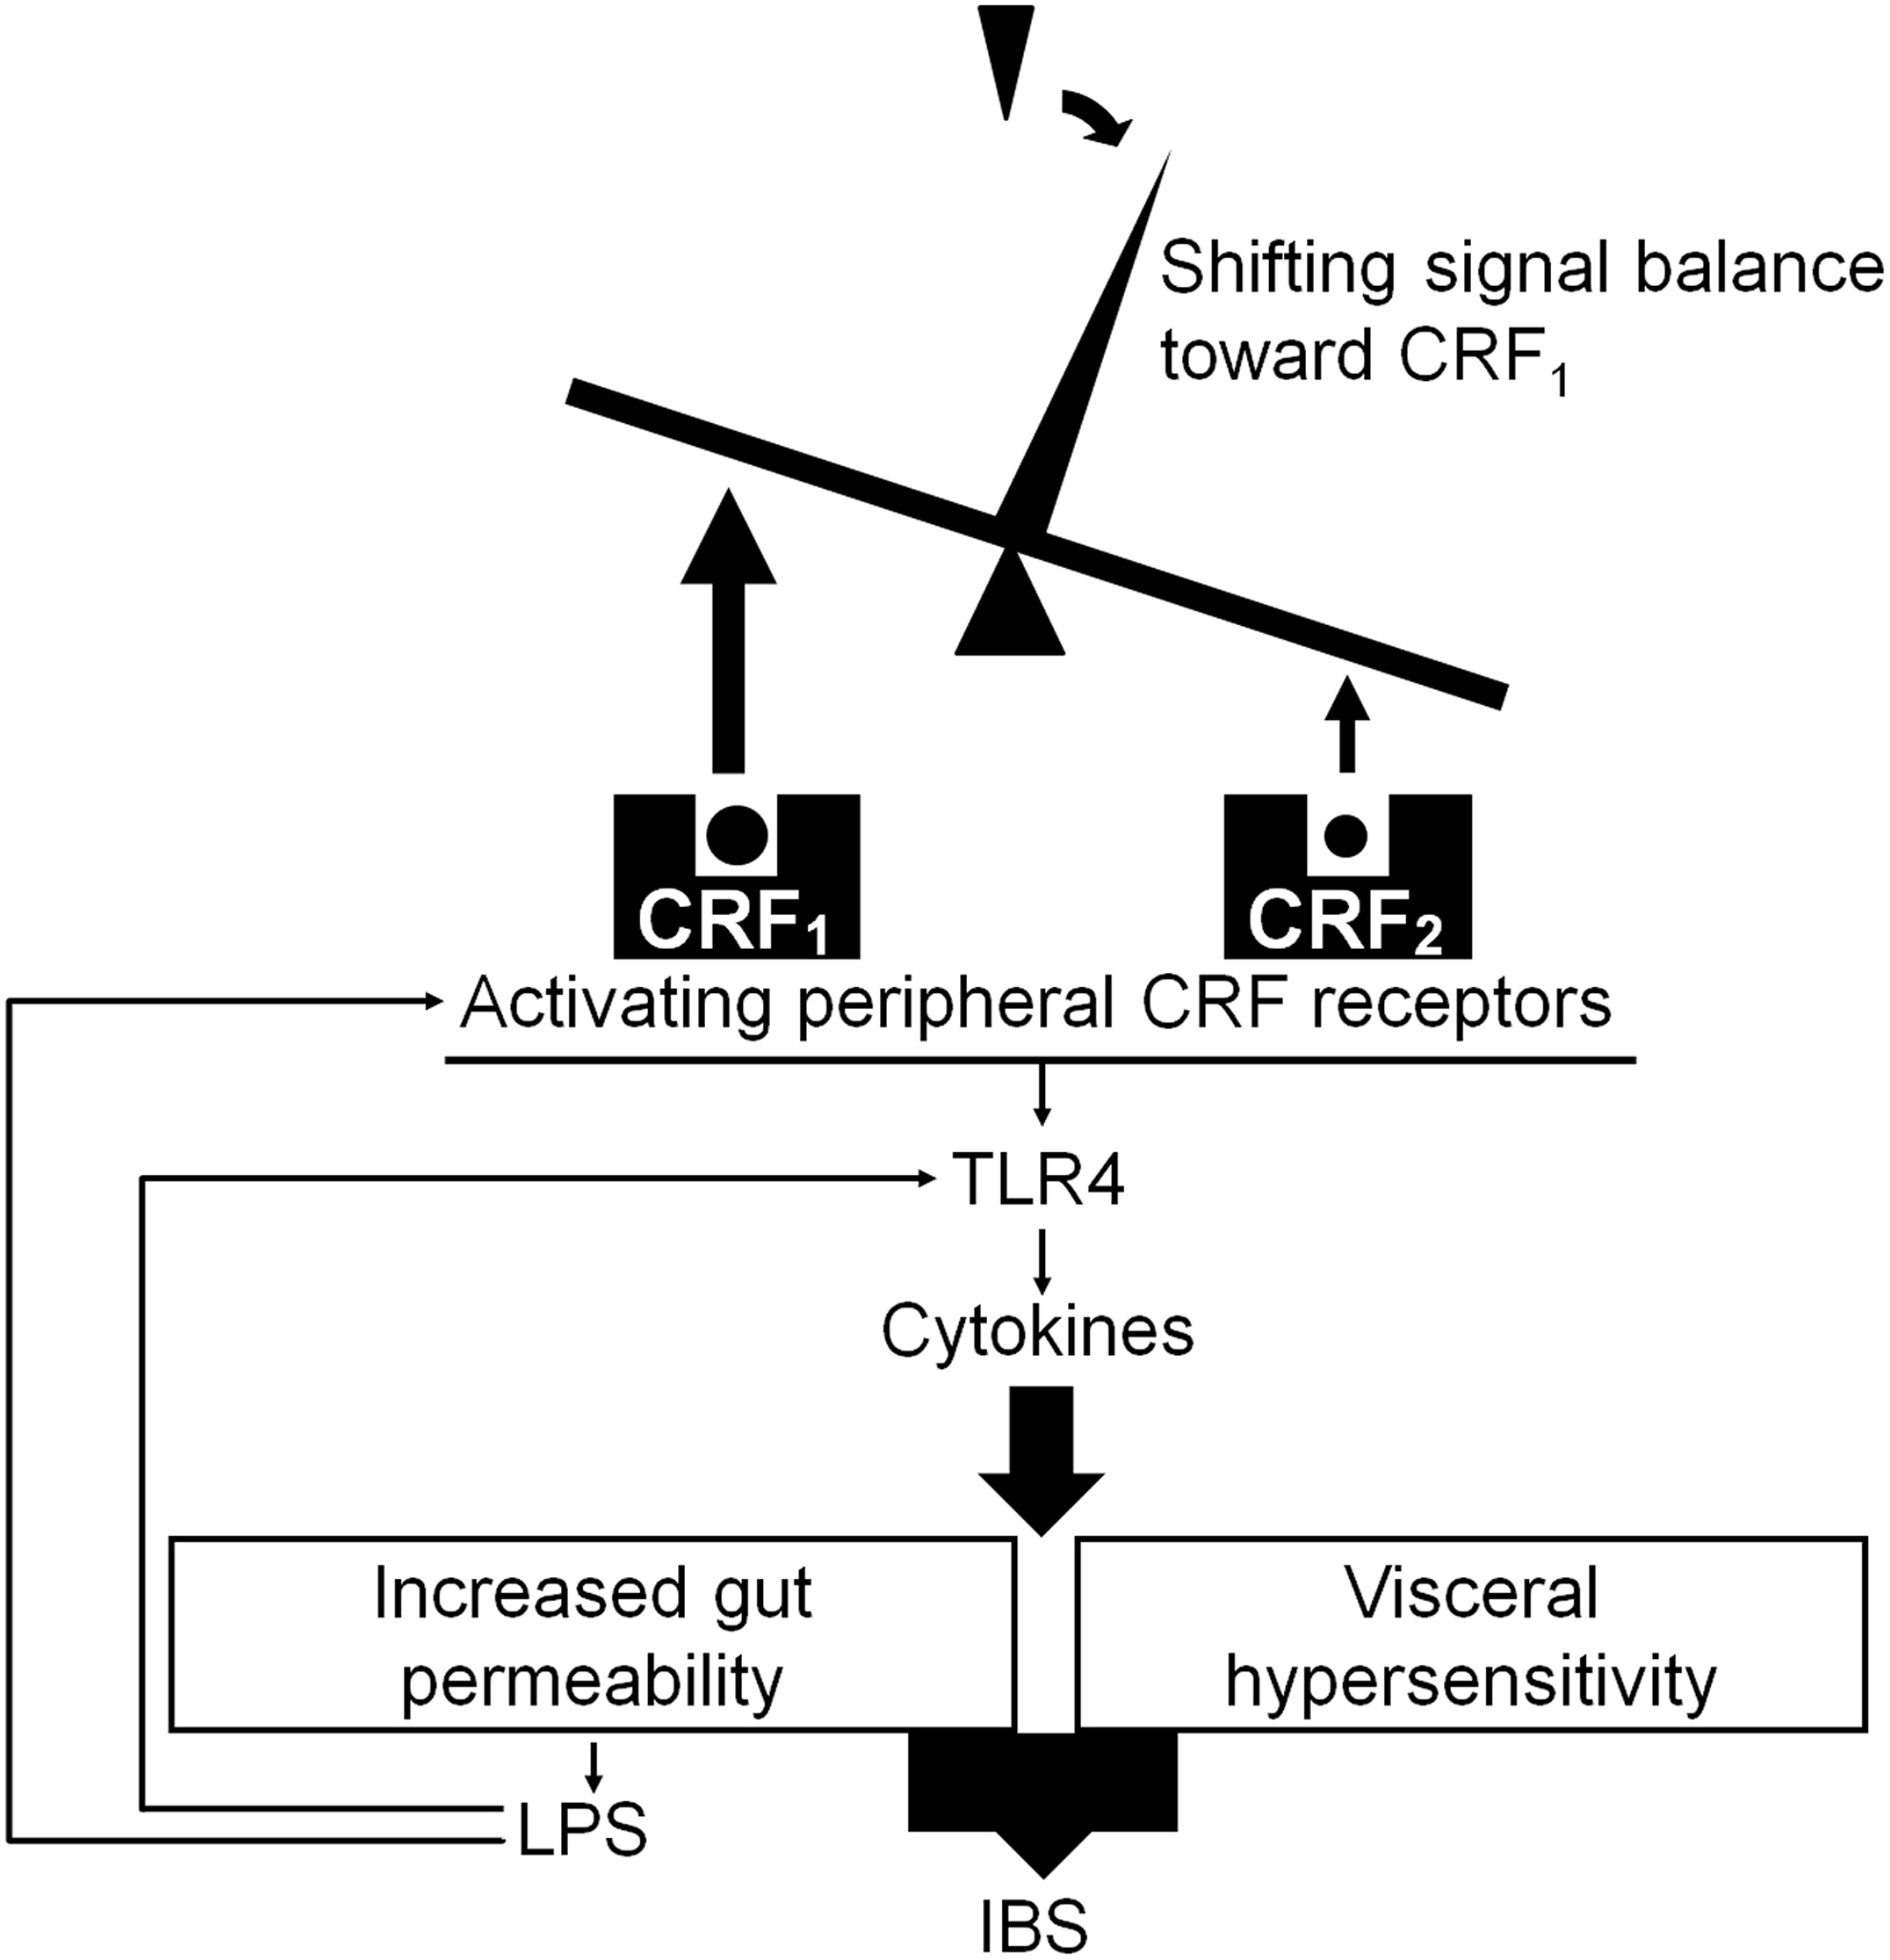 Altered colonic sensory and barrier functions by CRF: roles